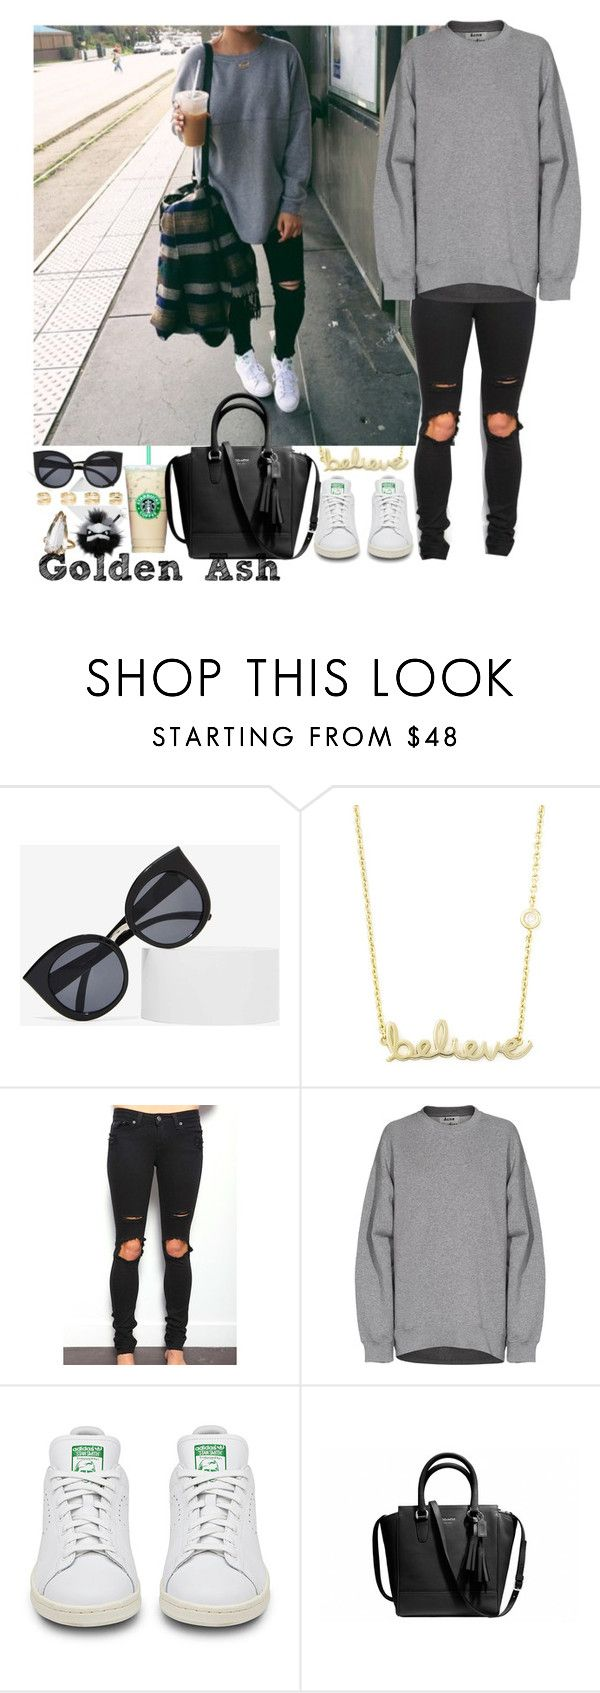 """""""After Break."""" by fashionsetstyler ❤ liked on Polyvore featuring Quay, Sydney Evan, Acne Studios, Maison Margiela and Fendi"""